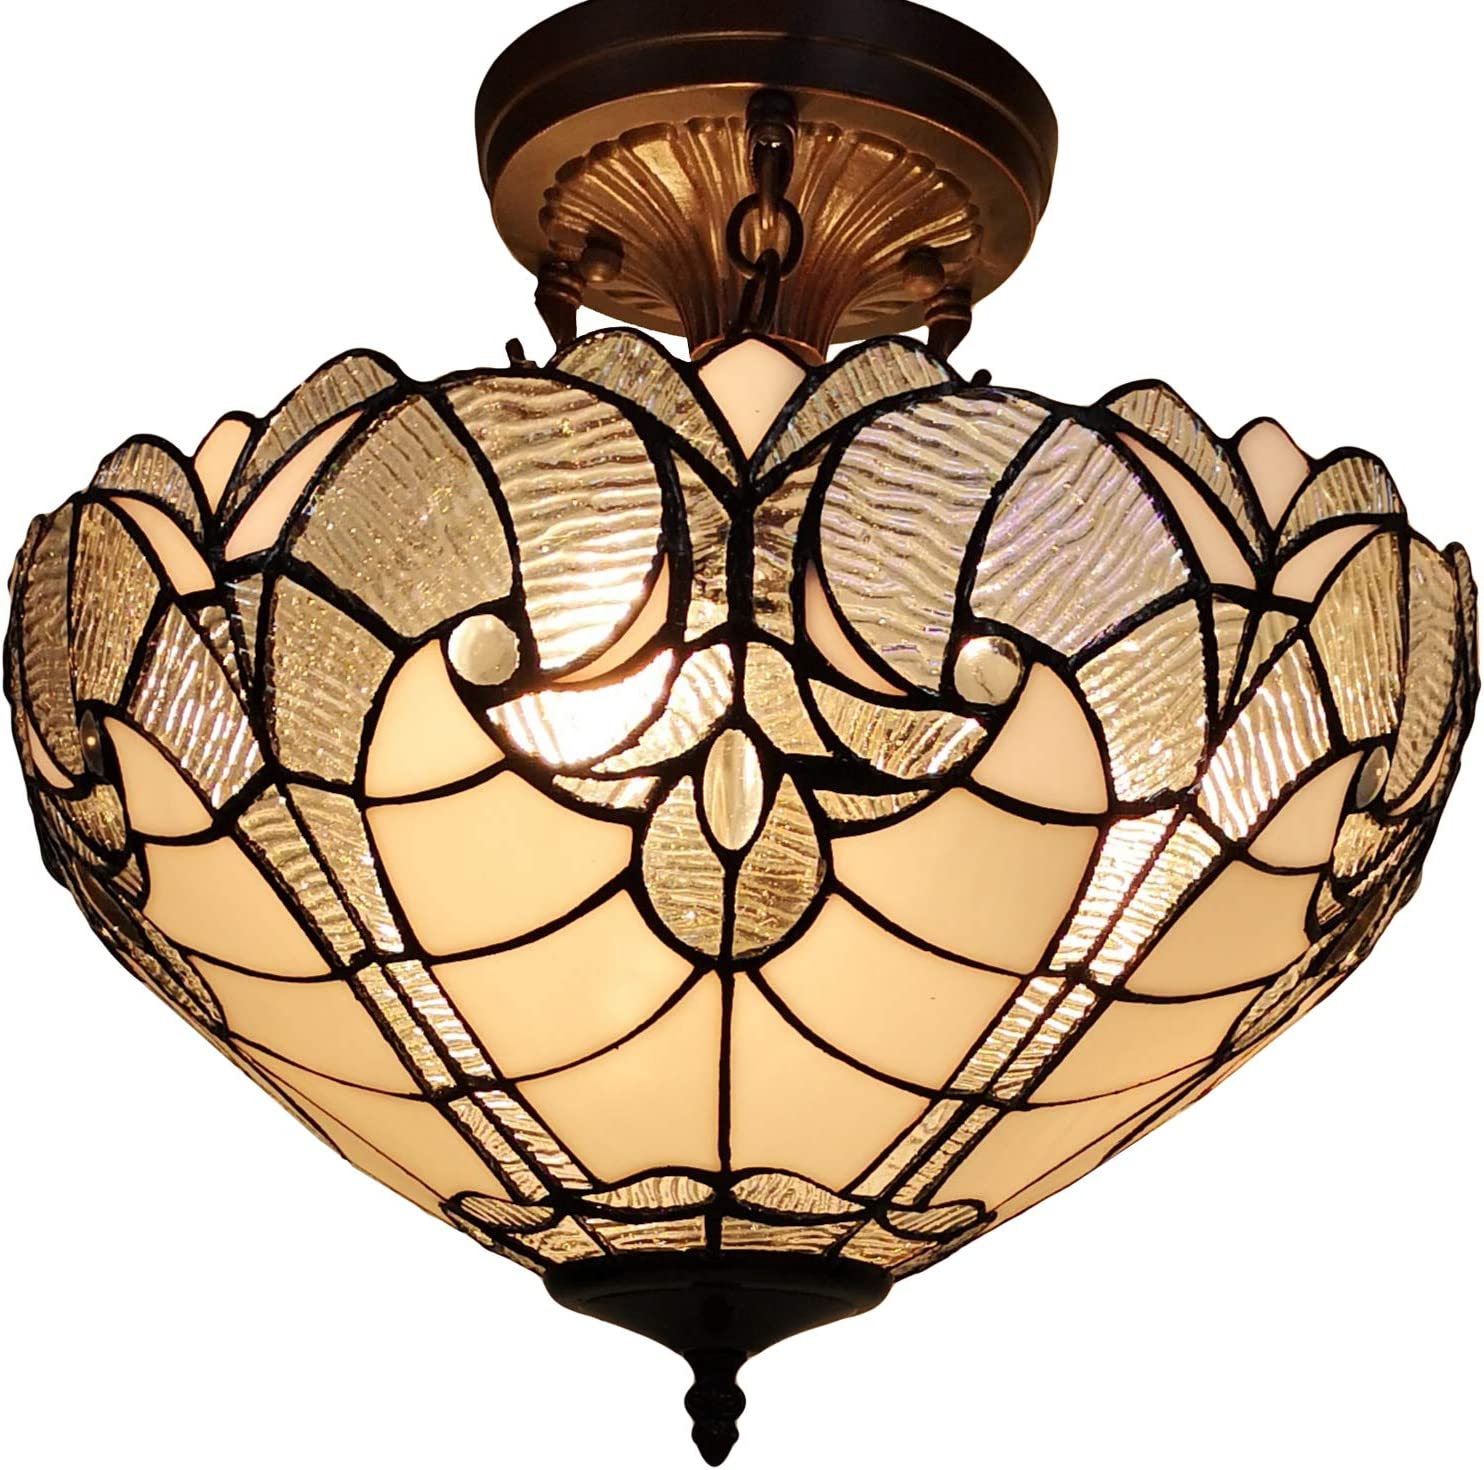 Amora Lighting Tiffany Style Ceiling Lamp Fixture Semi Flush 16 Wide White Stained Glass Antique Vintage 2 Light Decor Game Living Dining Room Kitchen Gift Am216hl16b Amazon Com